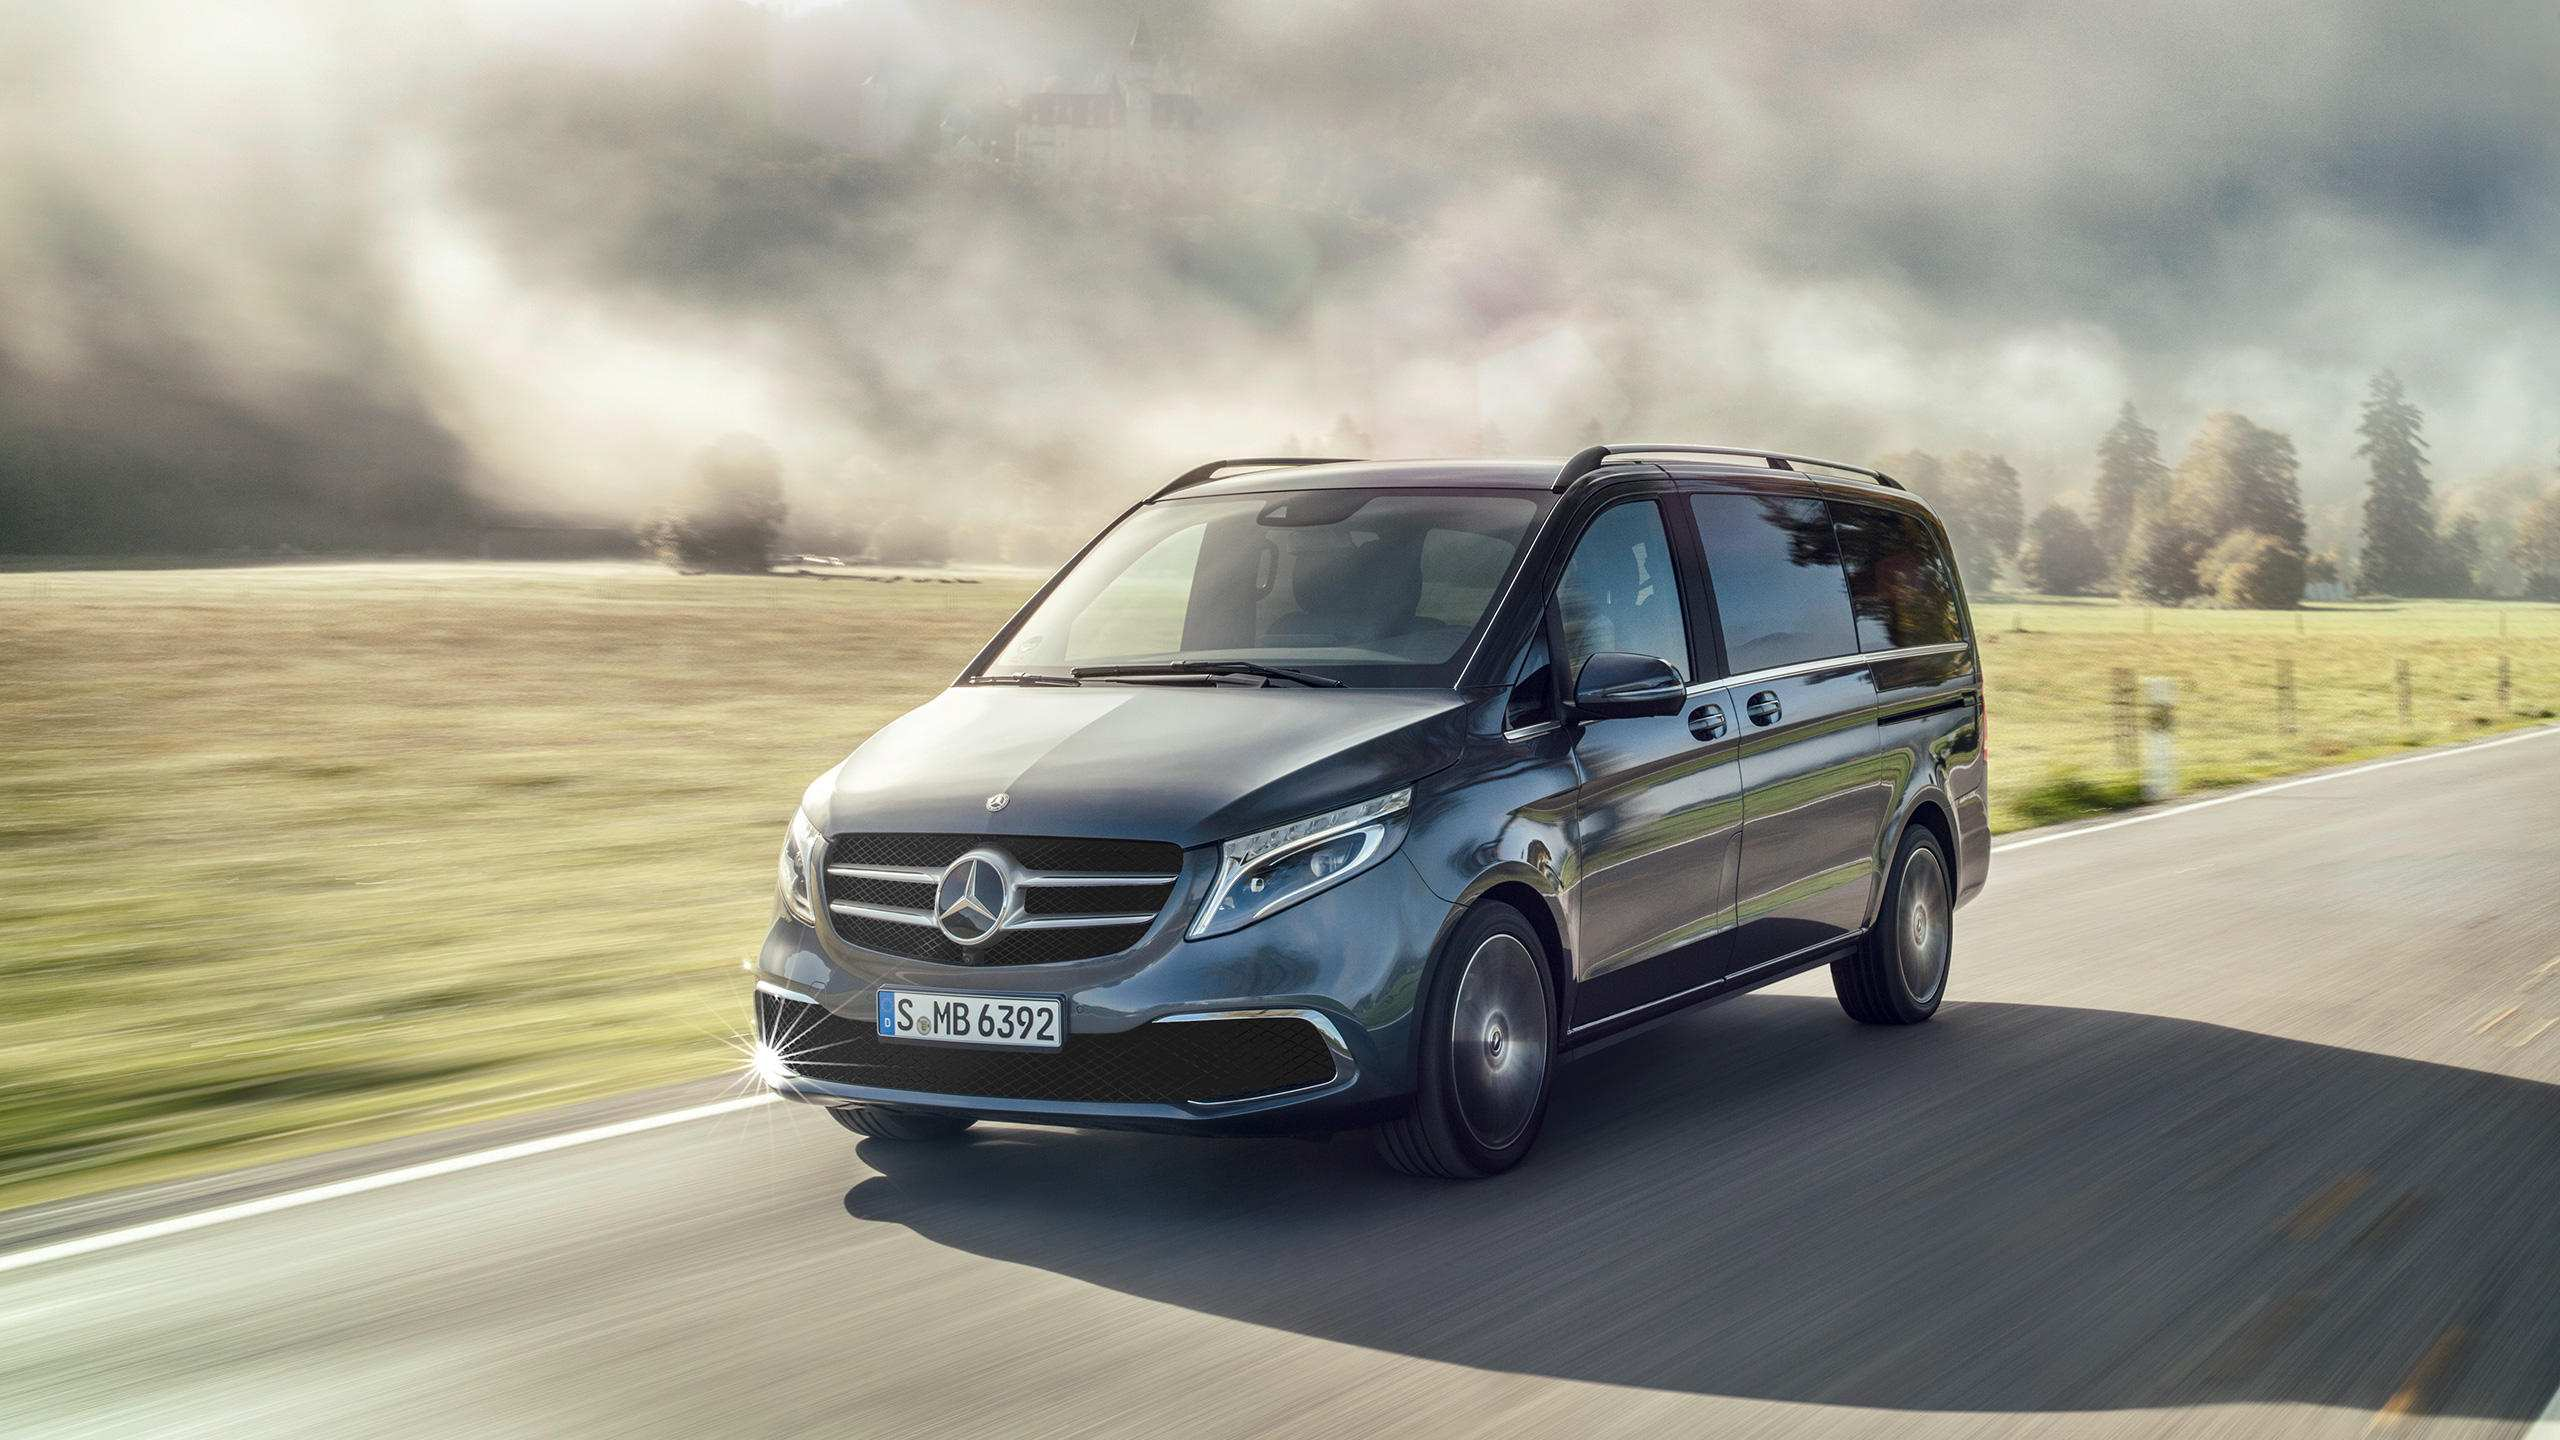 37 The Best Mercedes V Klasse 2019 Wallpaper